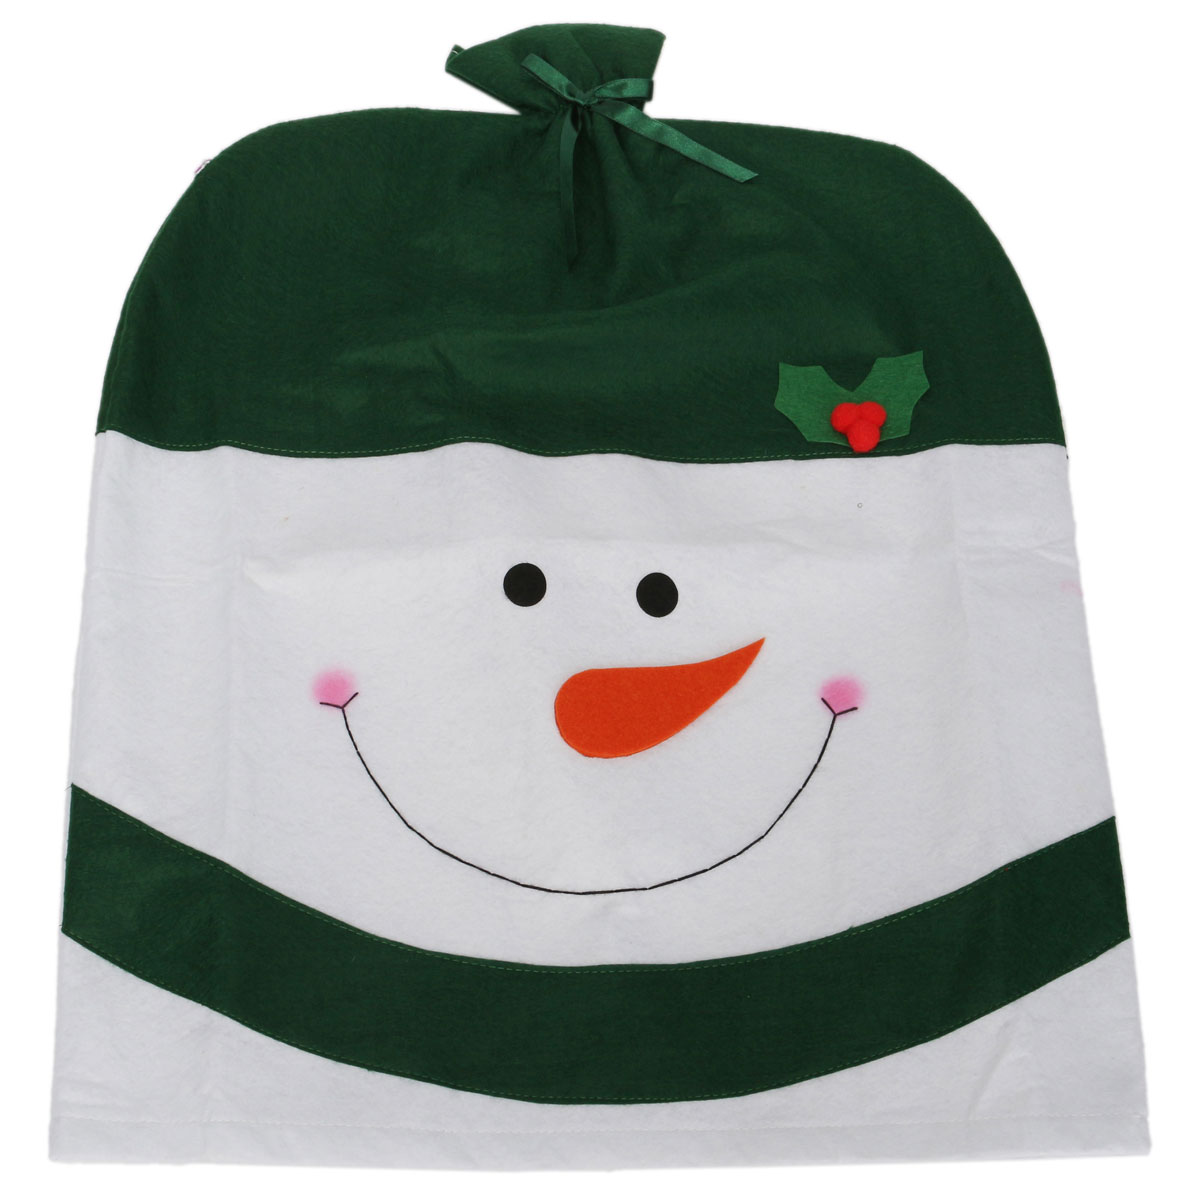 kirklands christmas chair covers for gaming back cover snowman hat xmas decoration